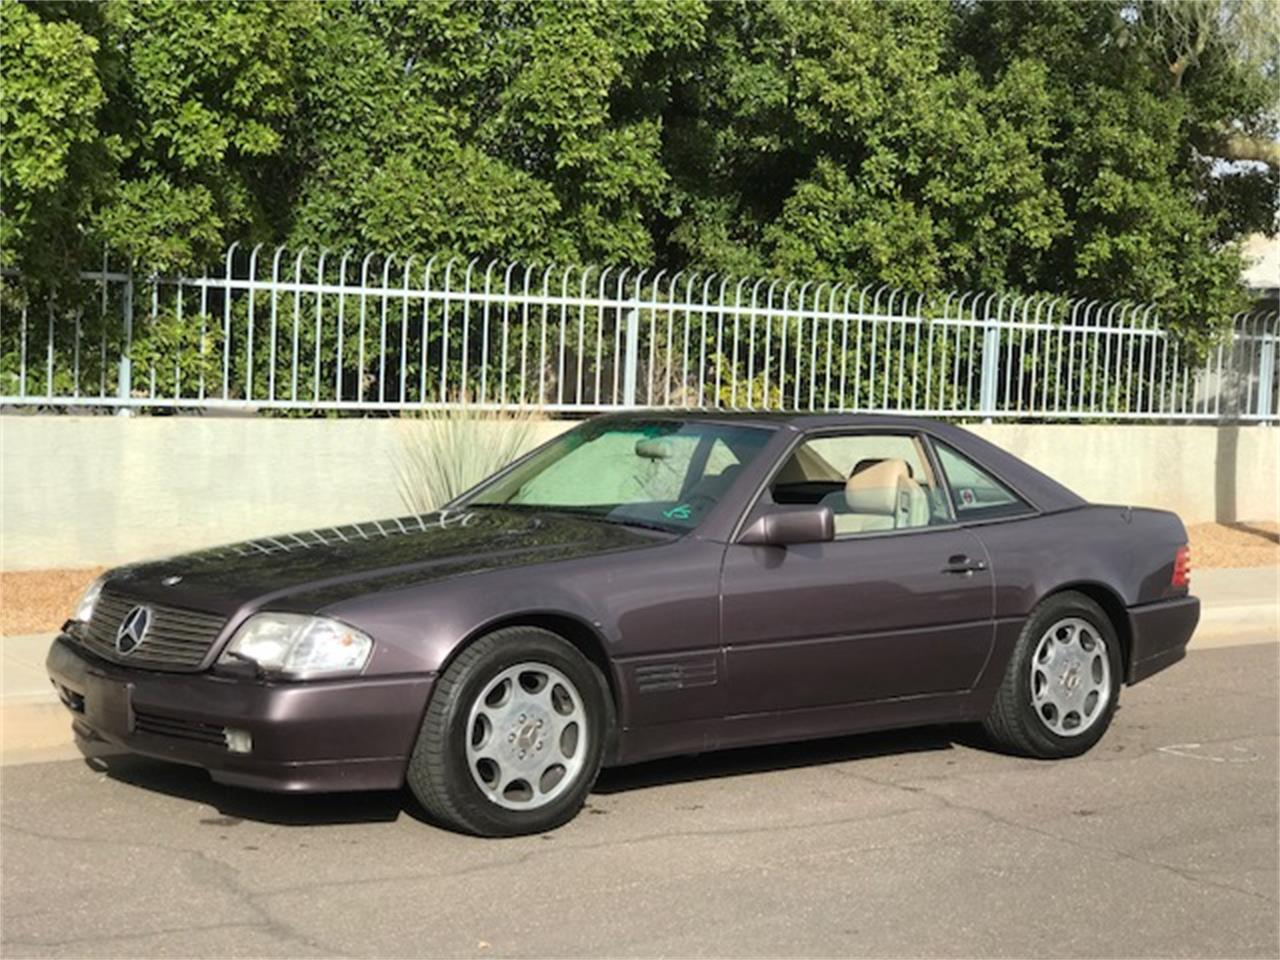 Large Picture of '92 Mercedes-Benz SL500 Auction Vehicle Offered by Russo and Steele - MOE6